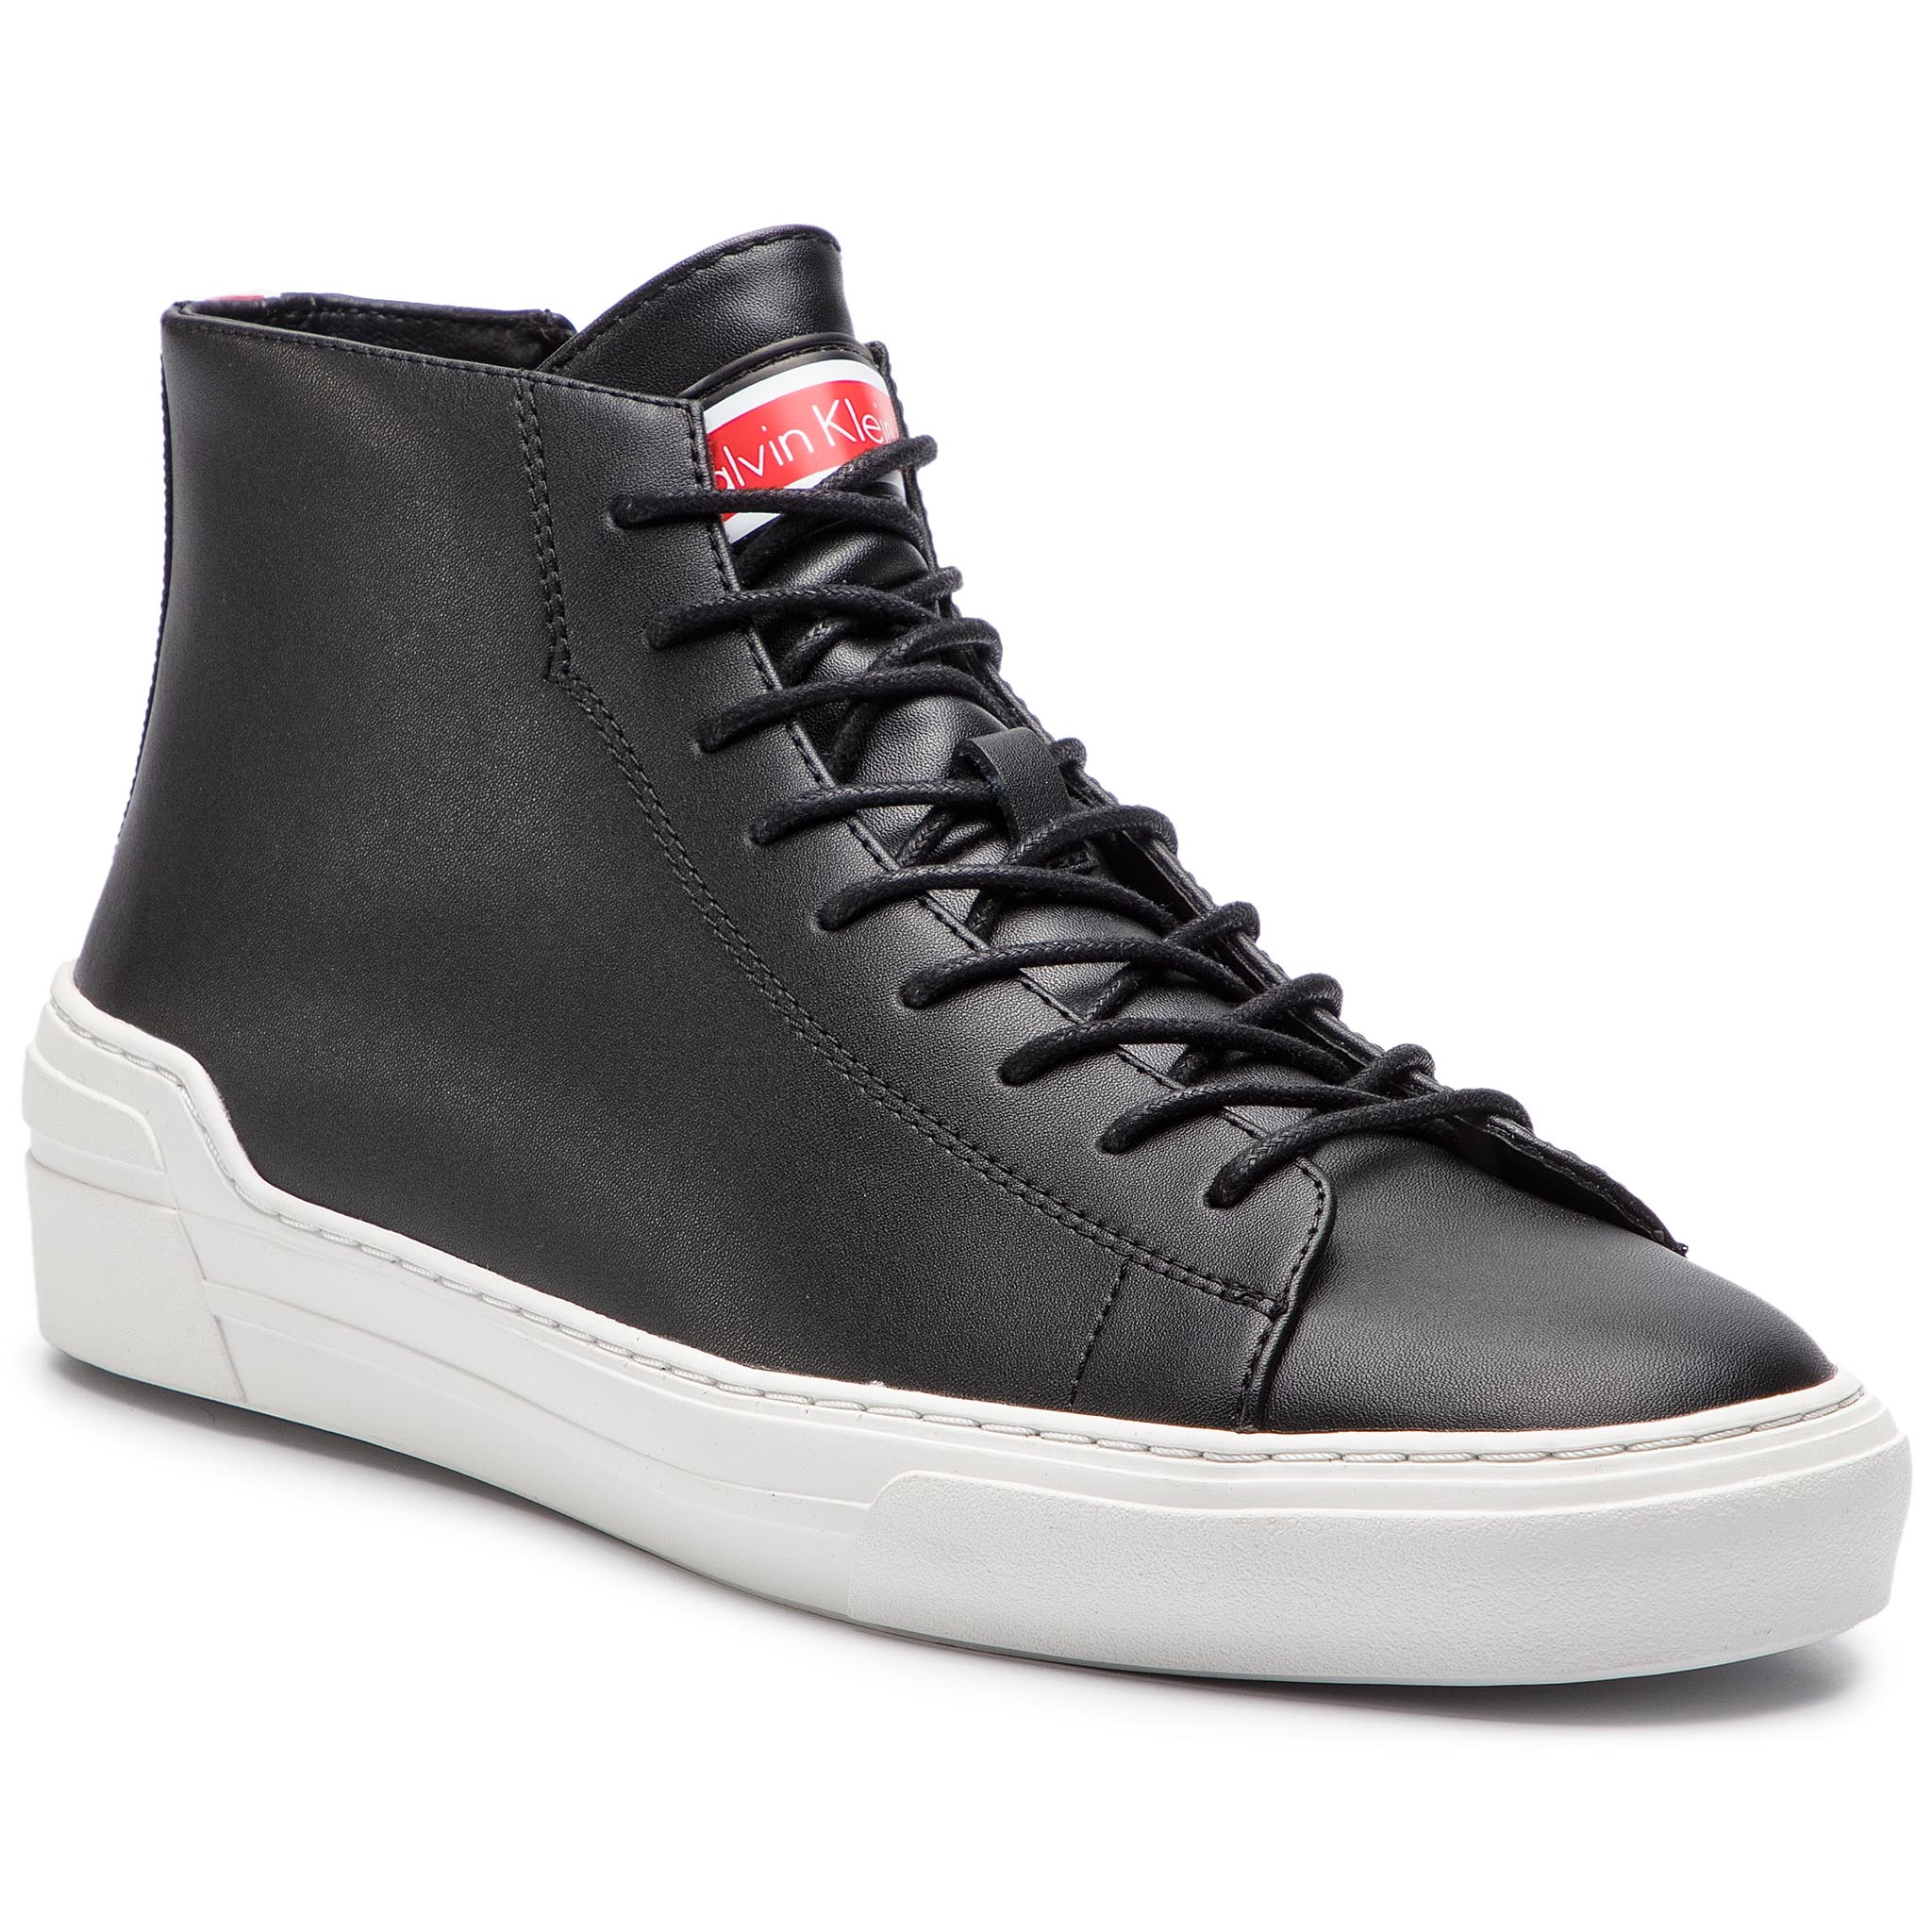 Sneakers CALVIN KLEIN - Okey F0996 Black/White/Cherry